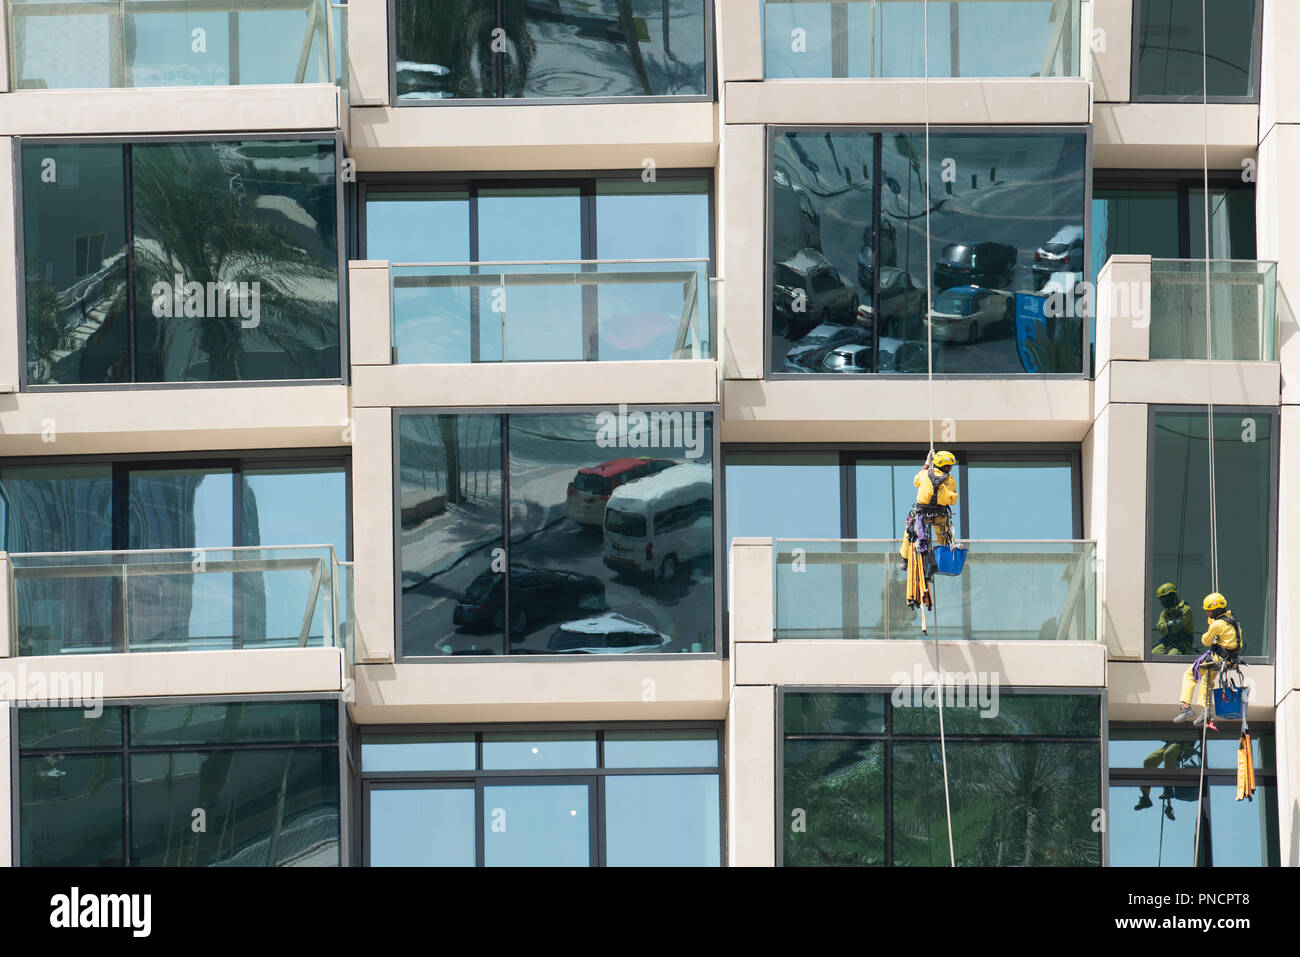 Detail of windows and balconies and window cleaners on new high rise apartment building in Downtown Dubai, UAE, United Arab Emirates. - Stock Image